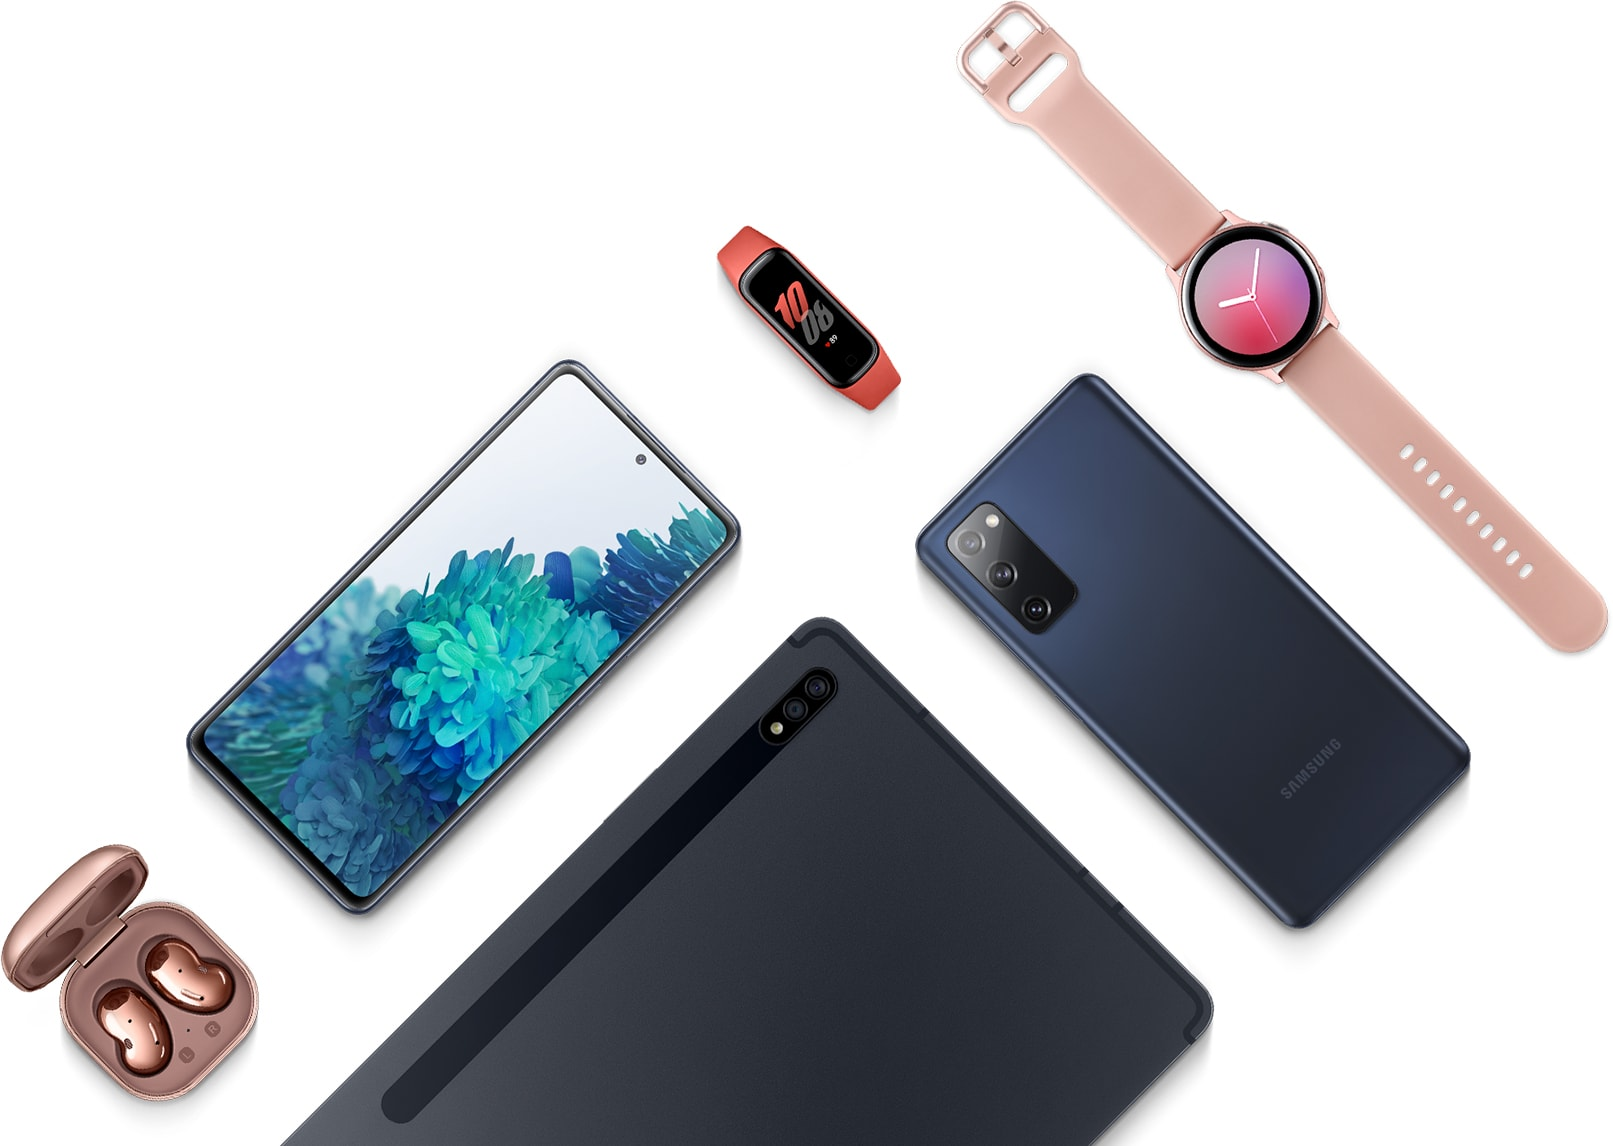 A flatlay with the Galaxy S20 FE 5G in Cloud Navy seen face up, Galaxy S20 FE 5G in Cloud Navy laying facedown, Galaxy Tab S7 in Mystic Black, Galaxy Buds Live earbuds in Mystic Bronze, Galaxy Fit2 in Red, and Galaxy Watch Active2 in Pink Gold.